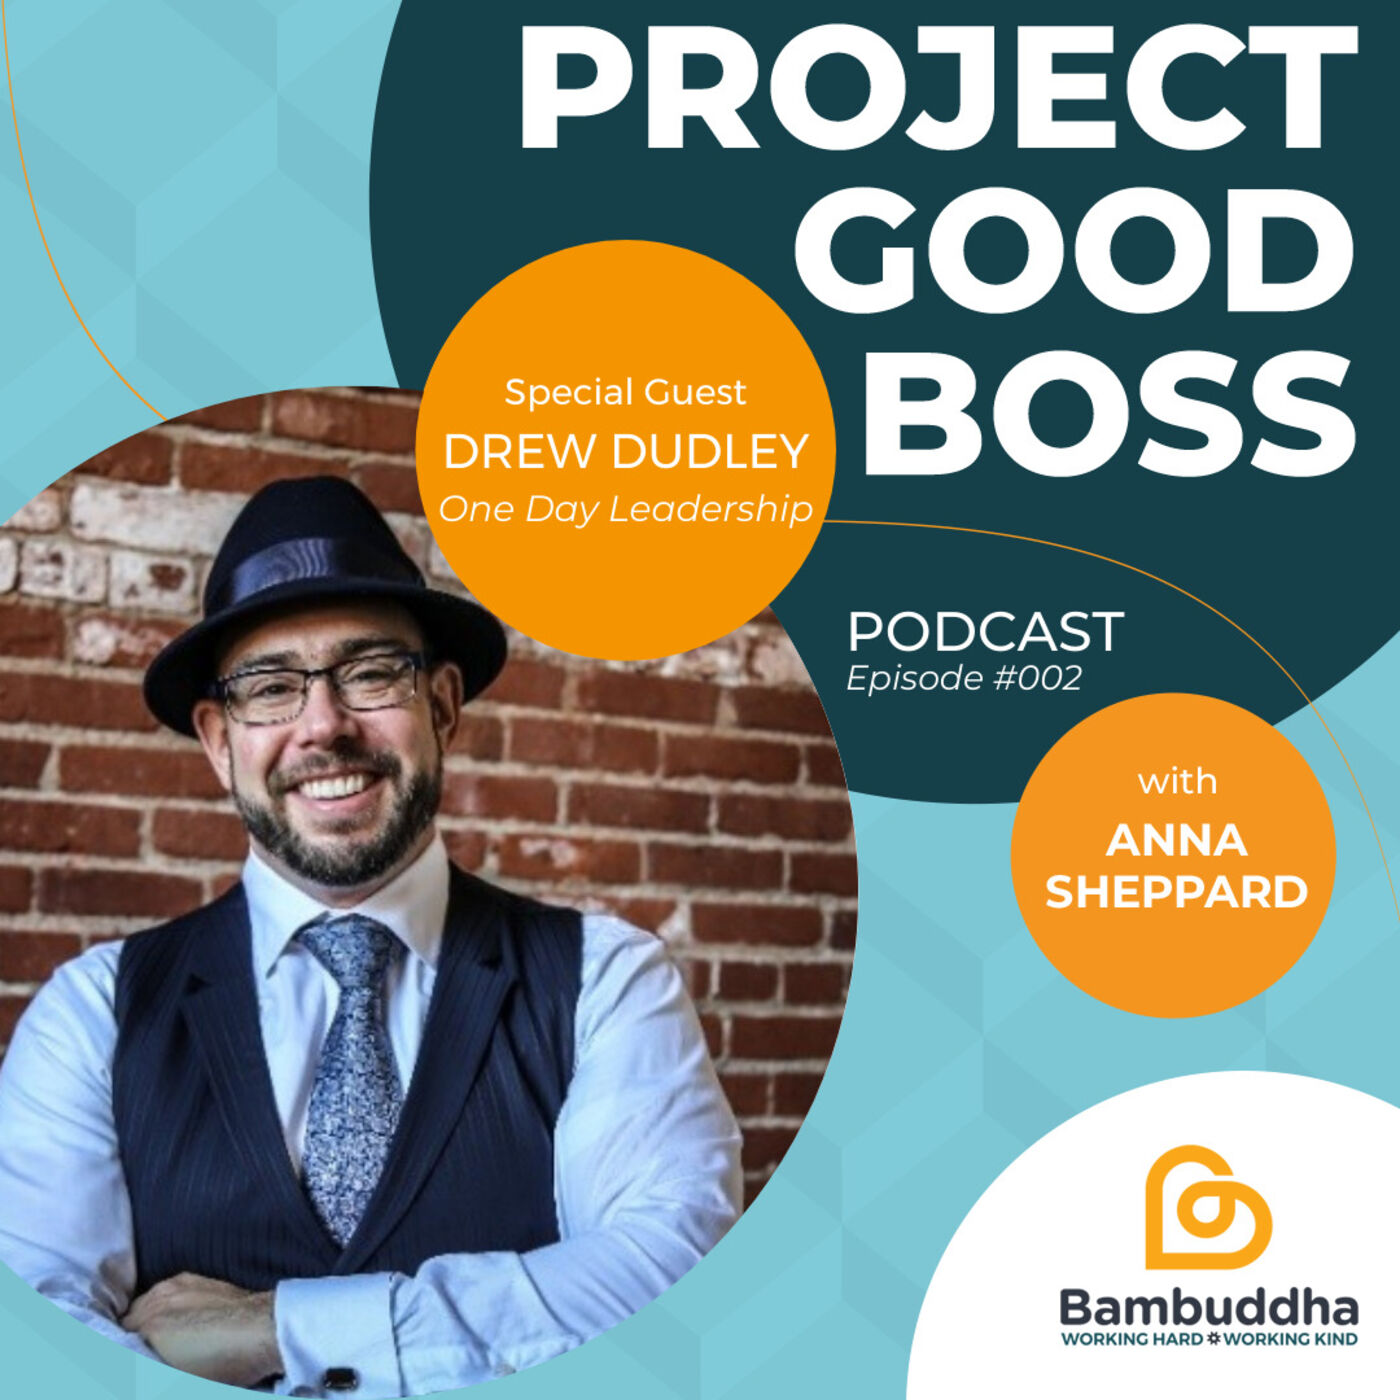 Drew Dudley on Forward Momentum and Becoming a Better Leader